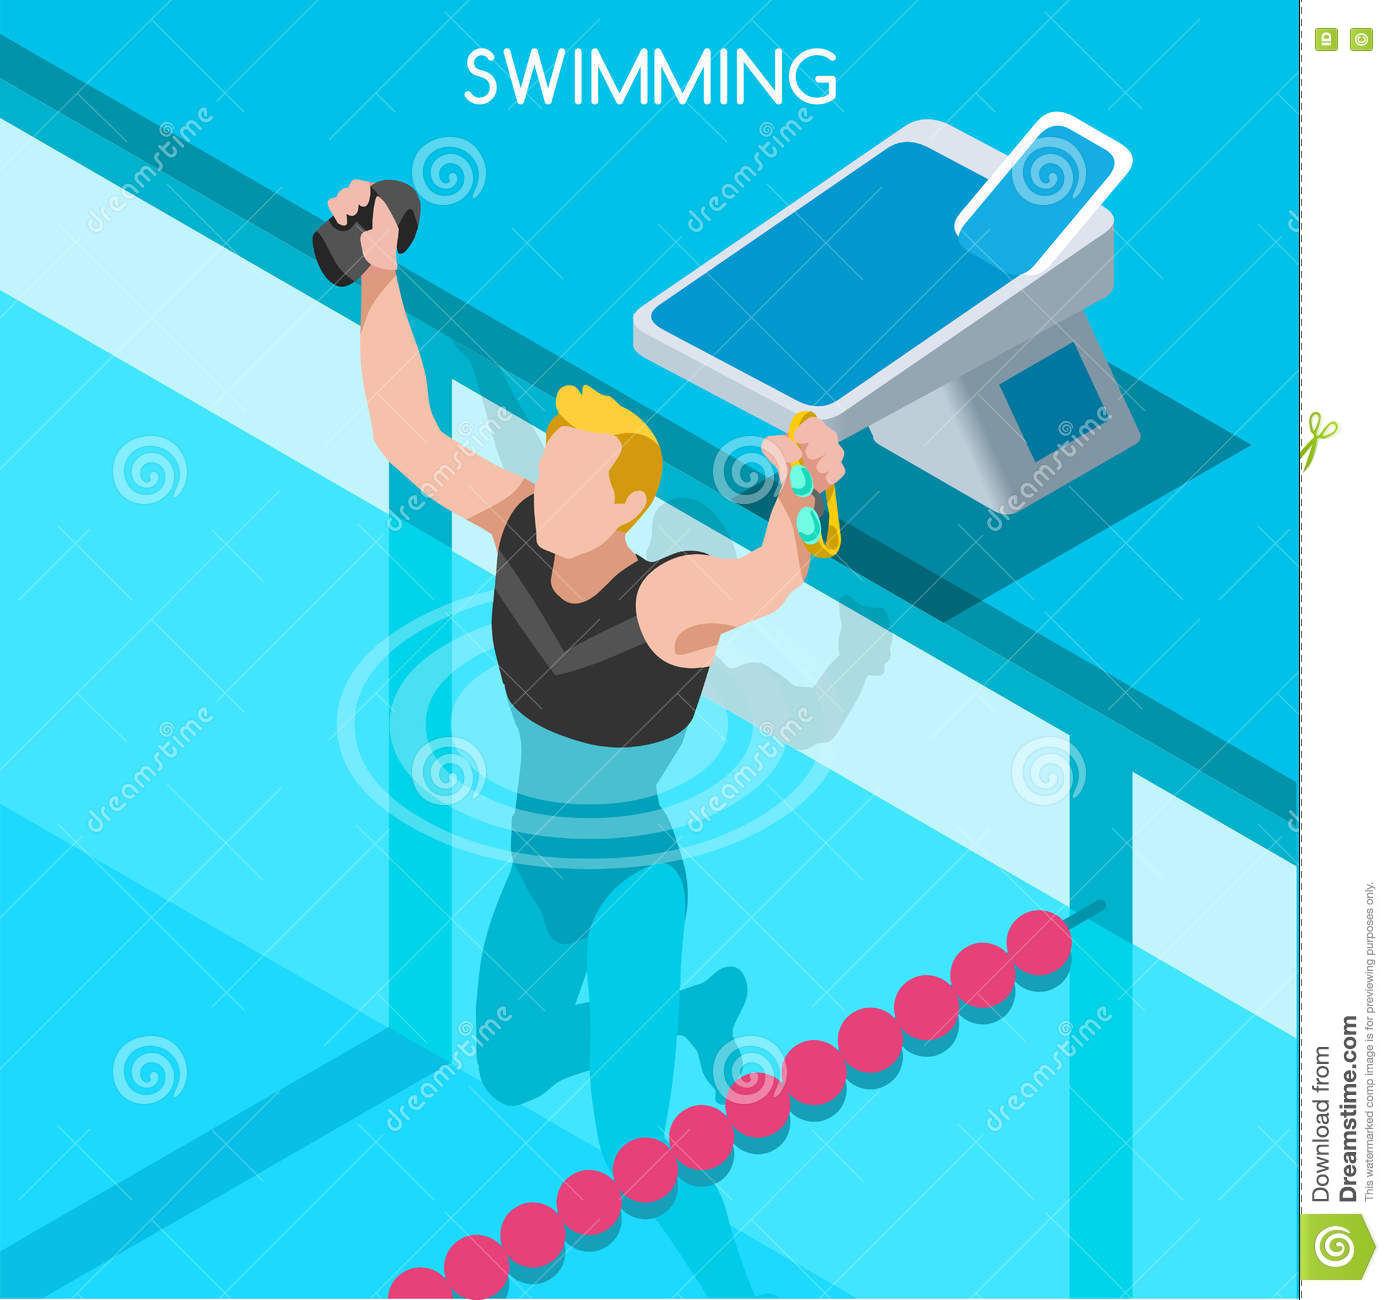 swimming freestyle summer games icon set 3d isometric swimmer